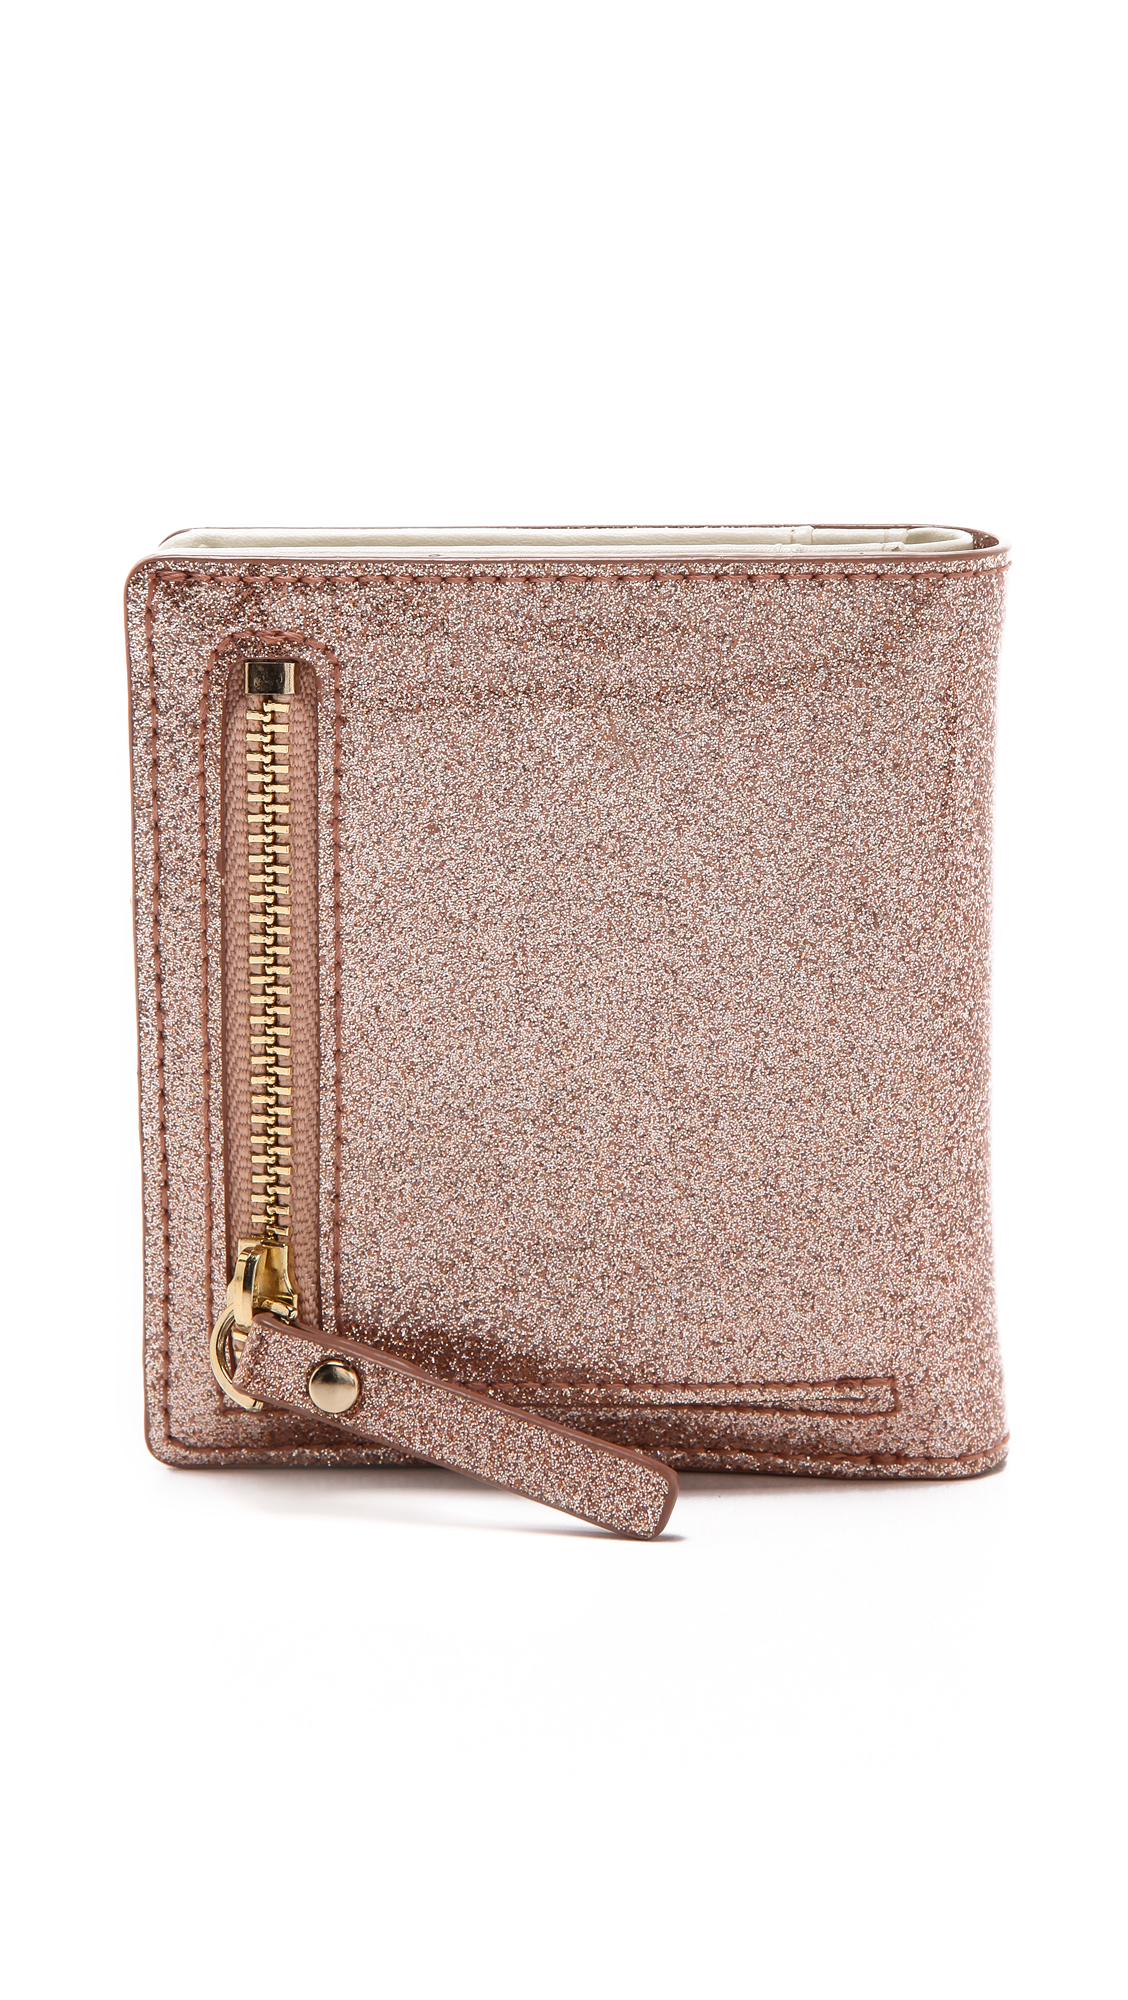 Kate Spade Glitter Bug Small Stacy Wallet in Rose Gold (Metallic) - Lyst